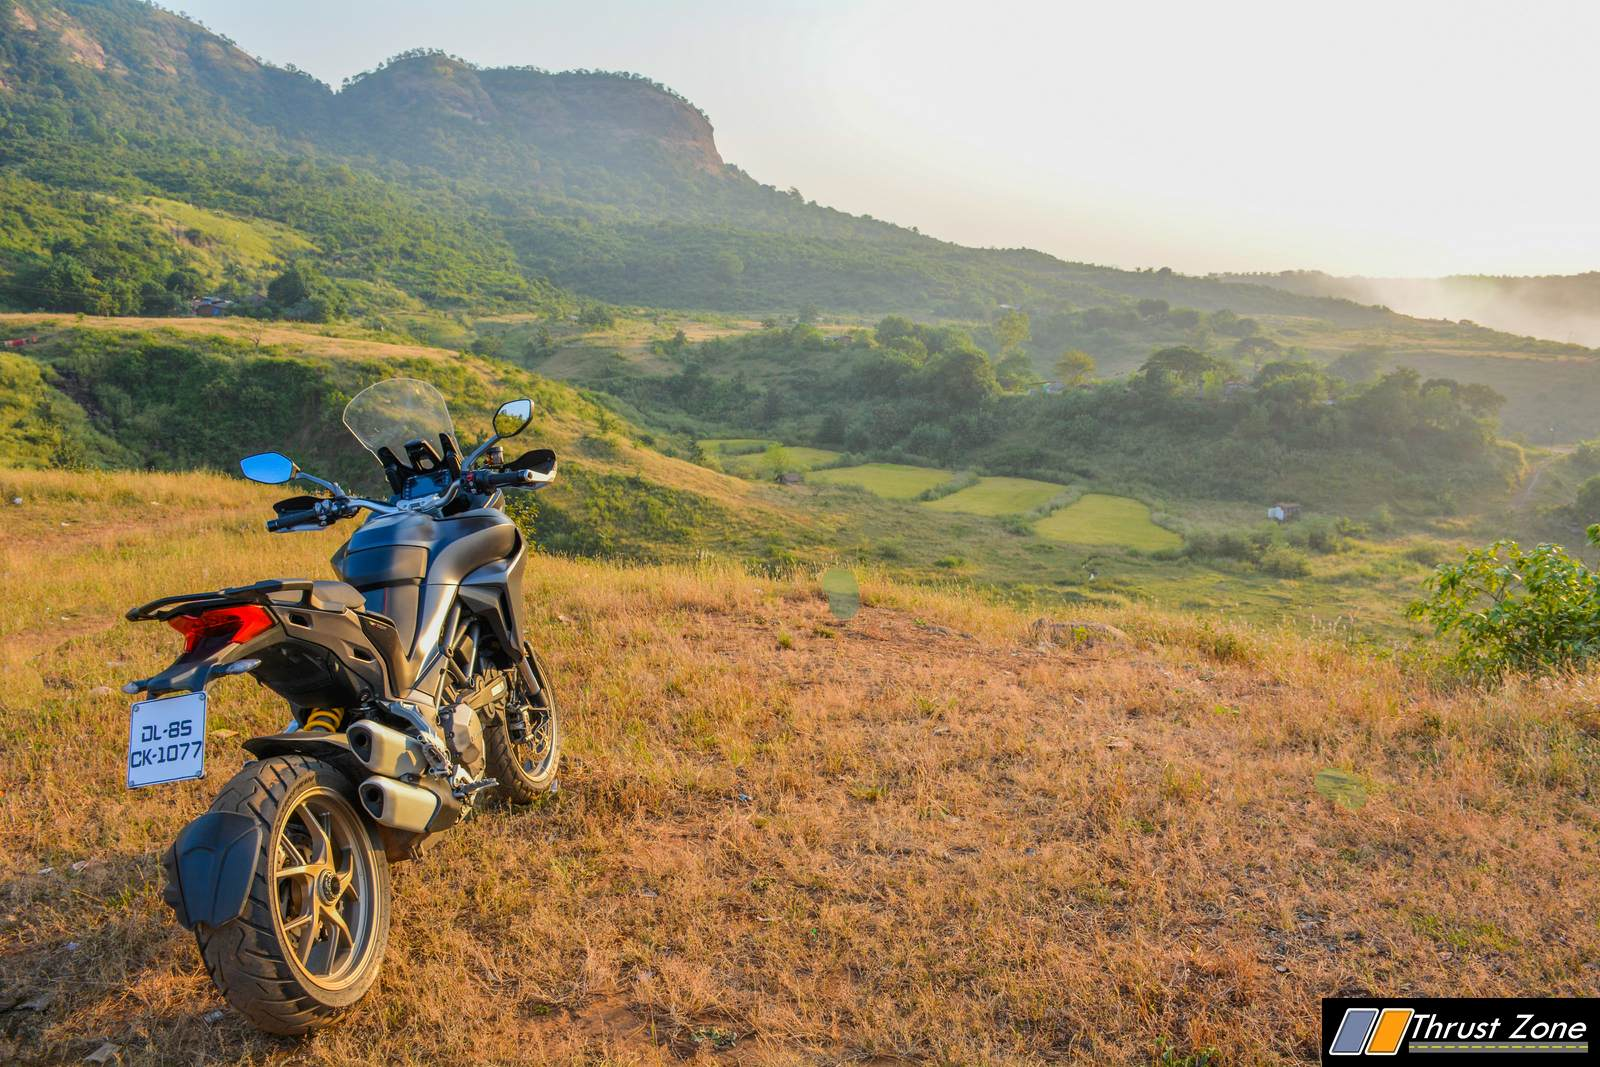 2018-Ducati-Multistrada-1260-India-Review-32